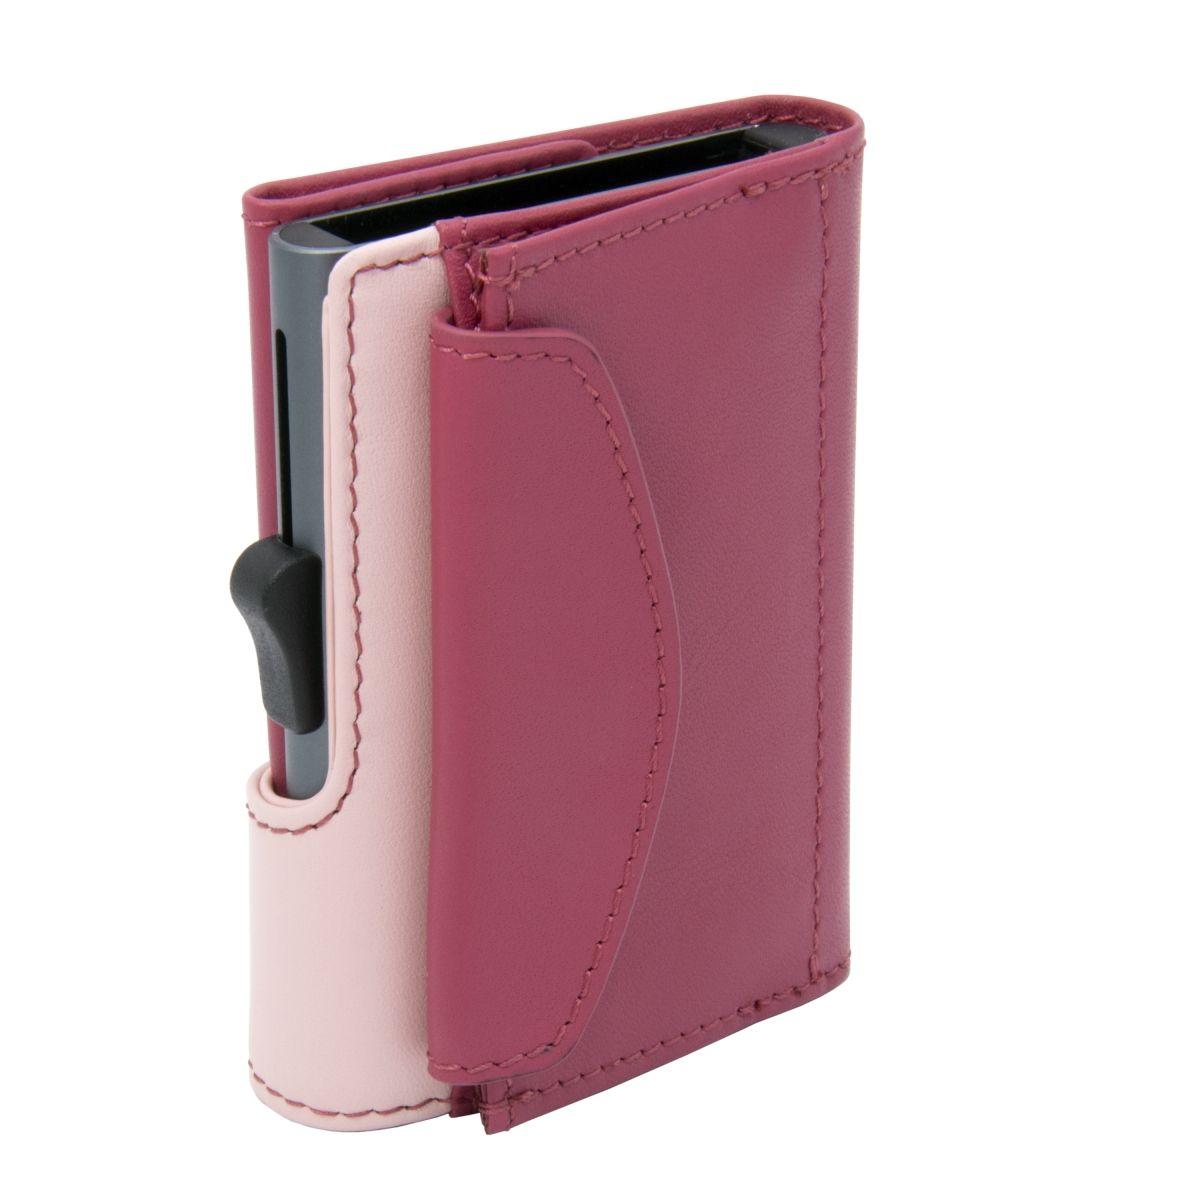 XL Aluminum Wallet with Genuine Leather and Coins Pocket - Cherry/Blush